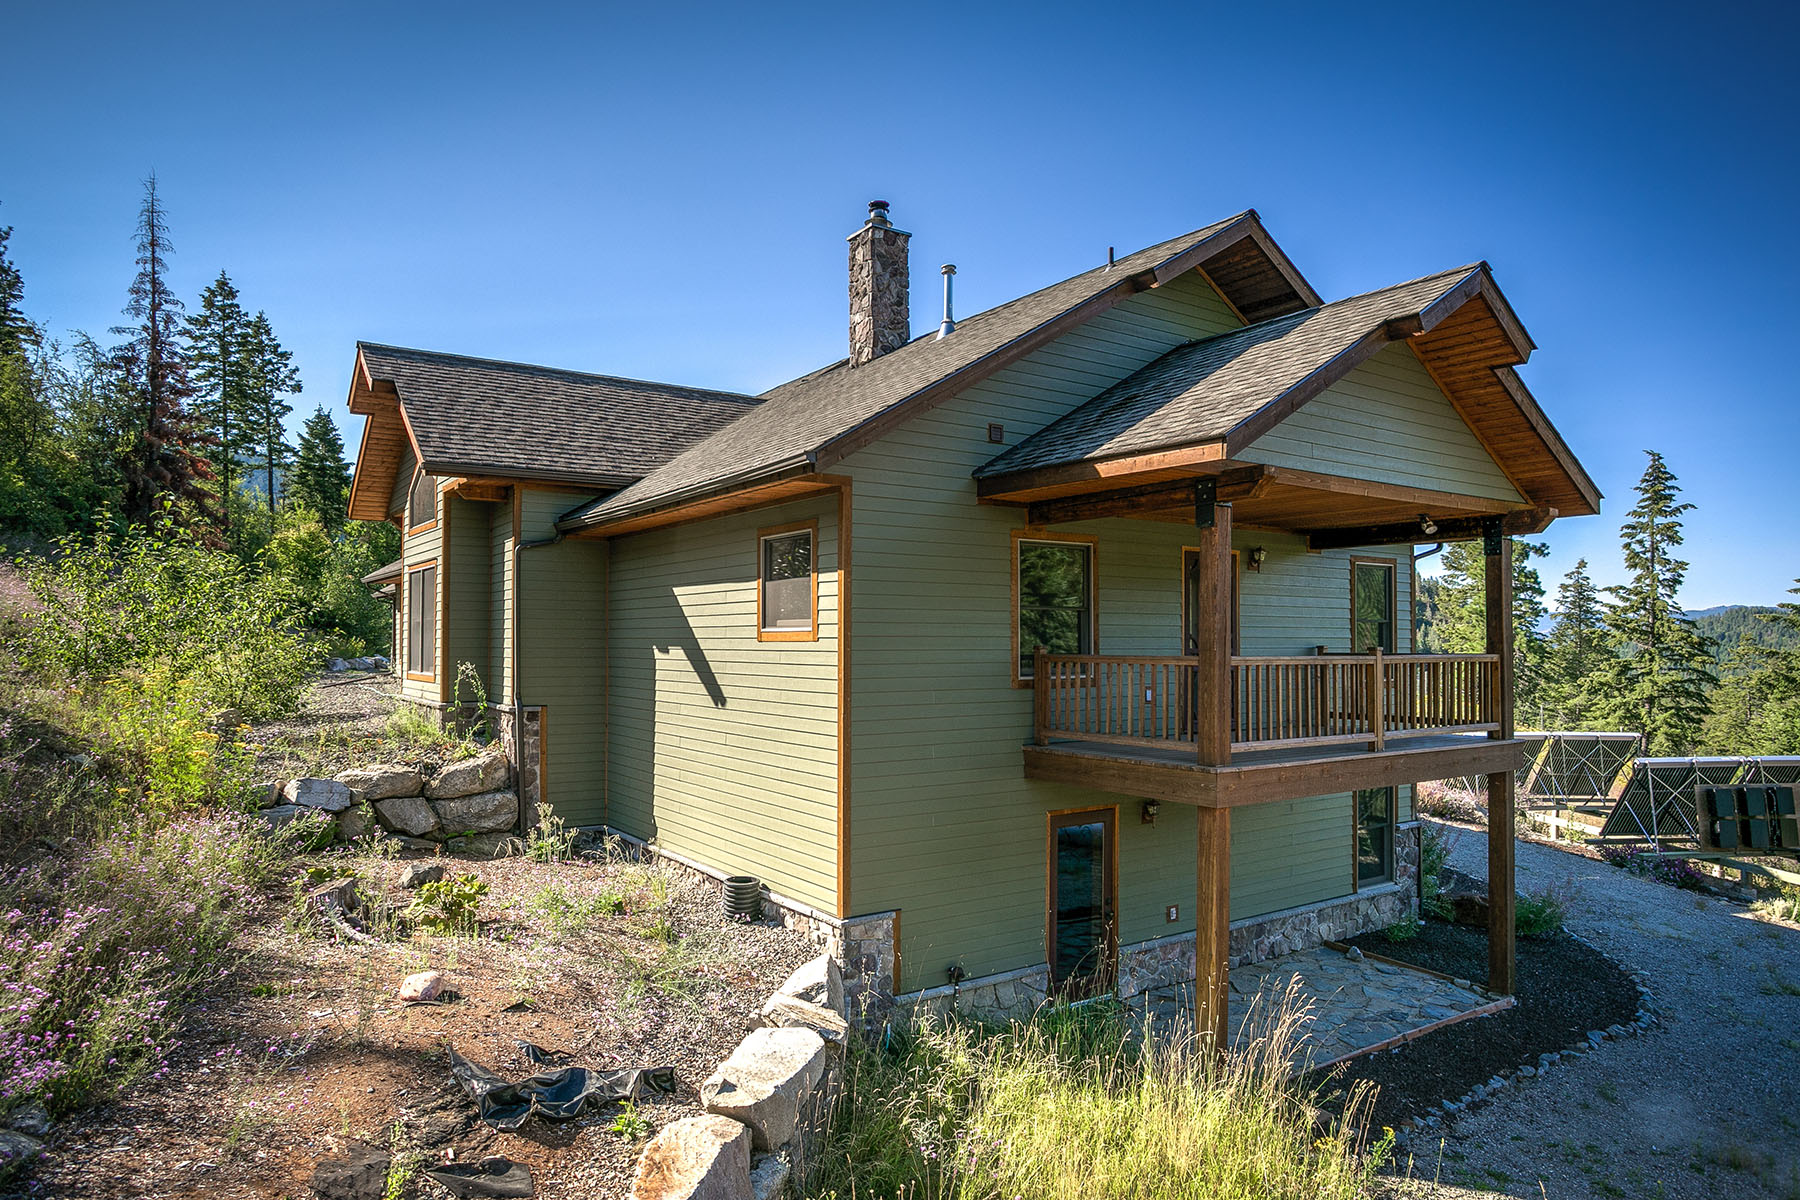 Single Family Home for Sale at Luxurious Wilderness Sanctuary 0 Trout Creek Ranch Rd Sandpoint, Idaho, 83864 United States